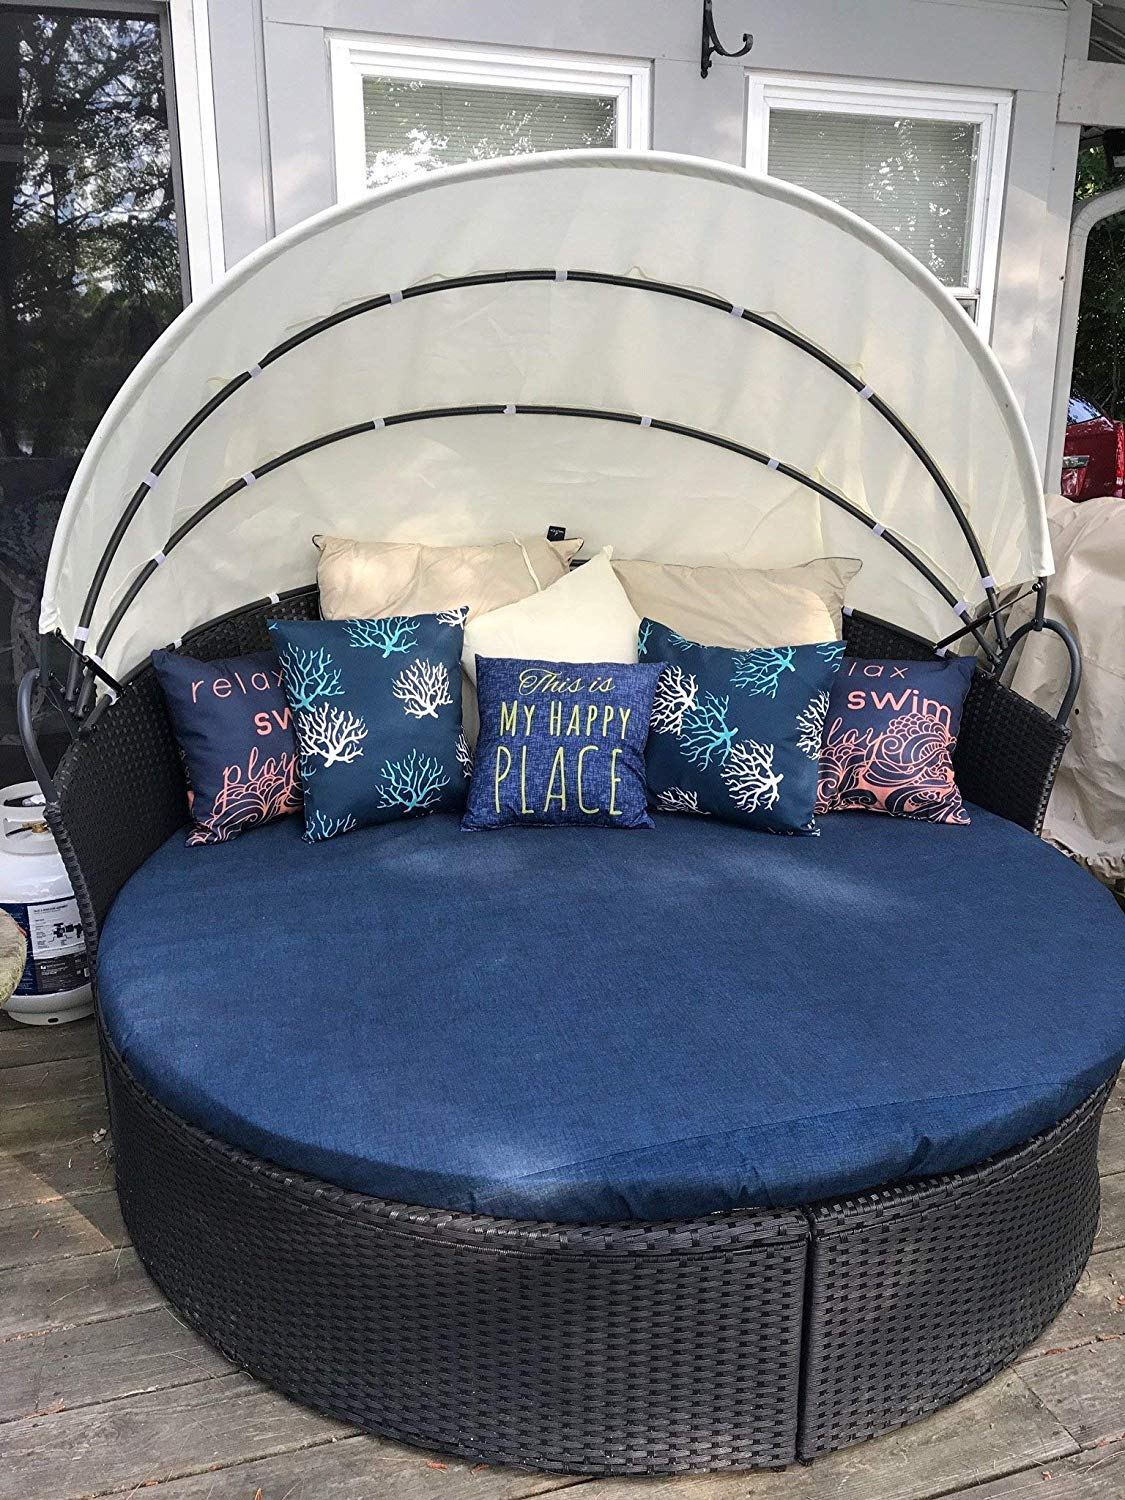 Outdoor Daybed Cover, Daybed Cover with drawstring, Sun bed cushion cover